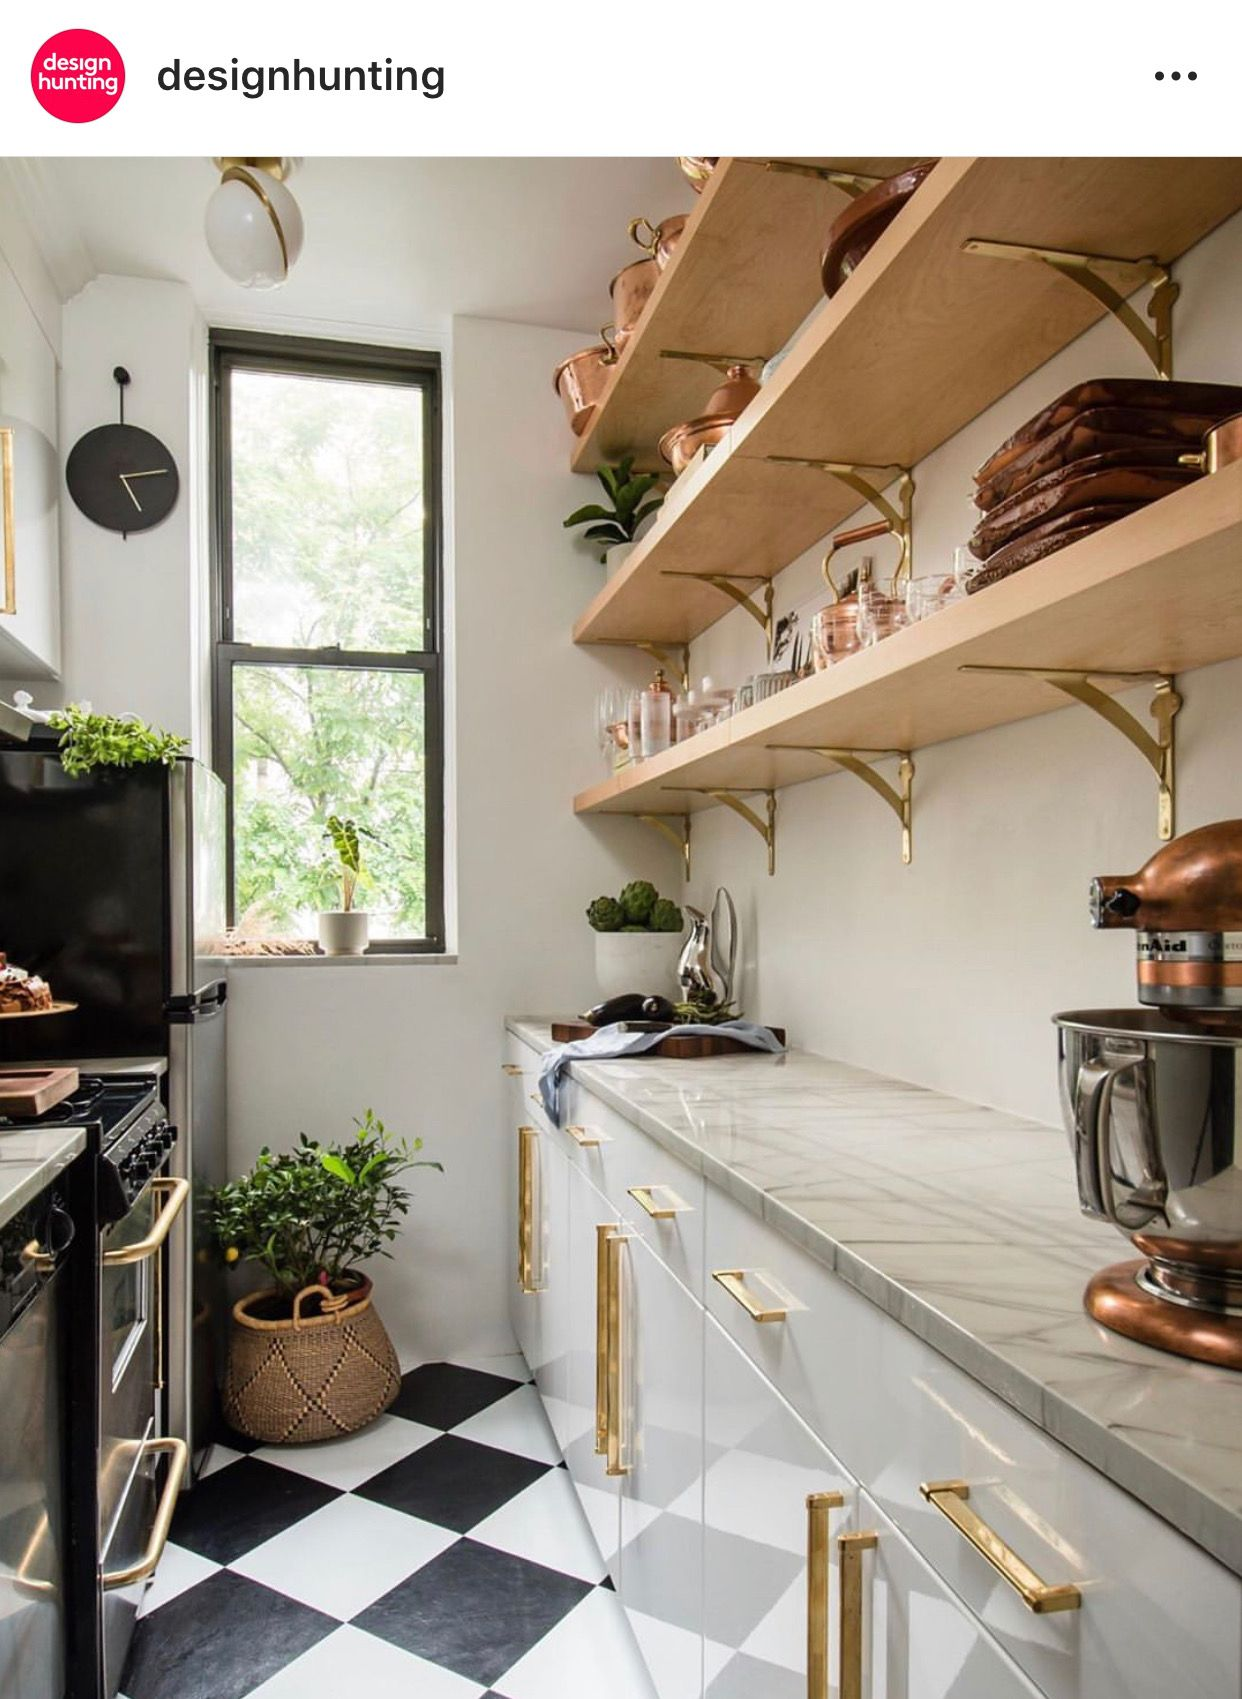 pin by elyssa jechow on home kitchen tiny kitchen floating shelves shelves on kitchen floating shelves id=21829